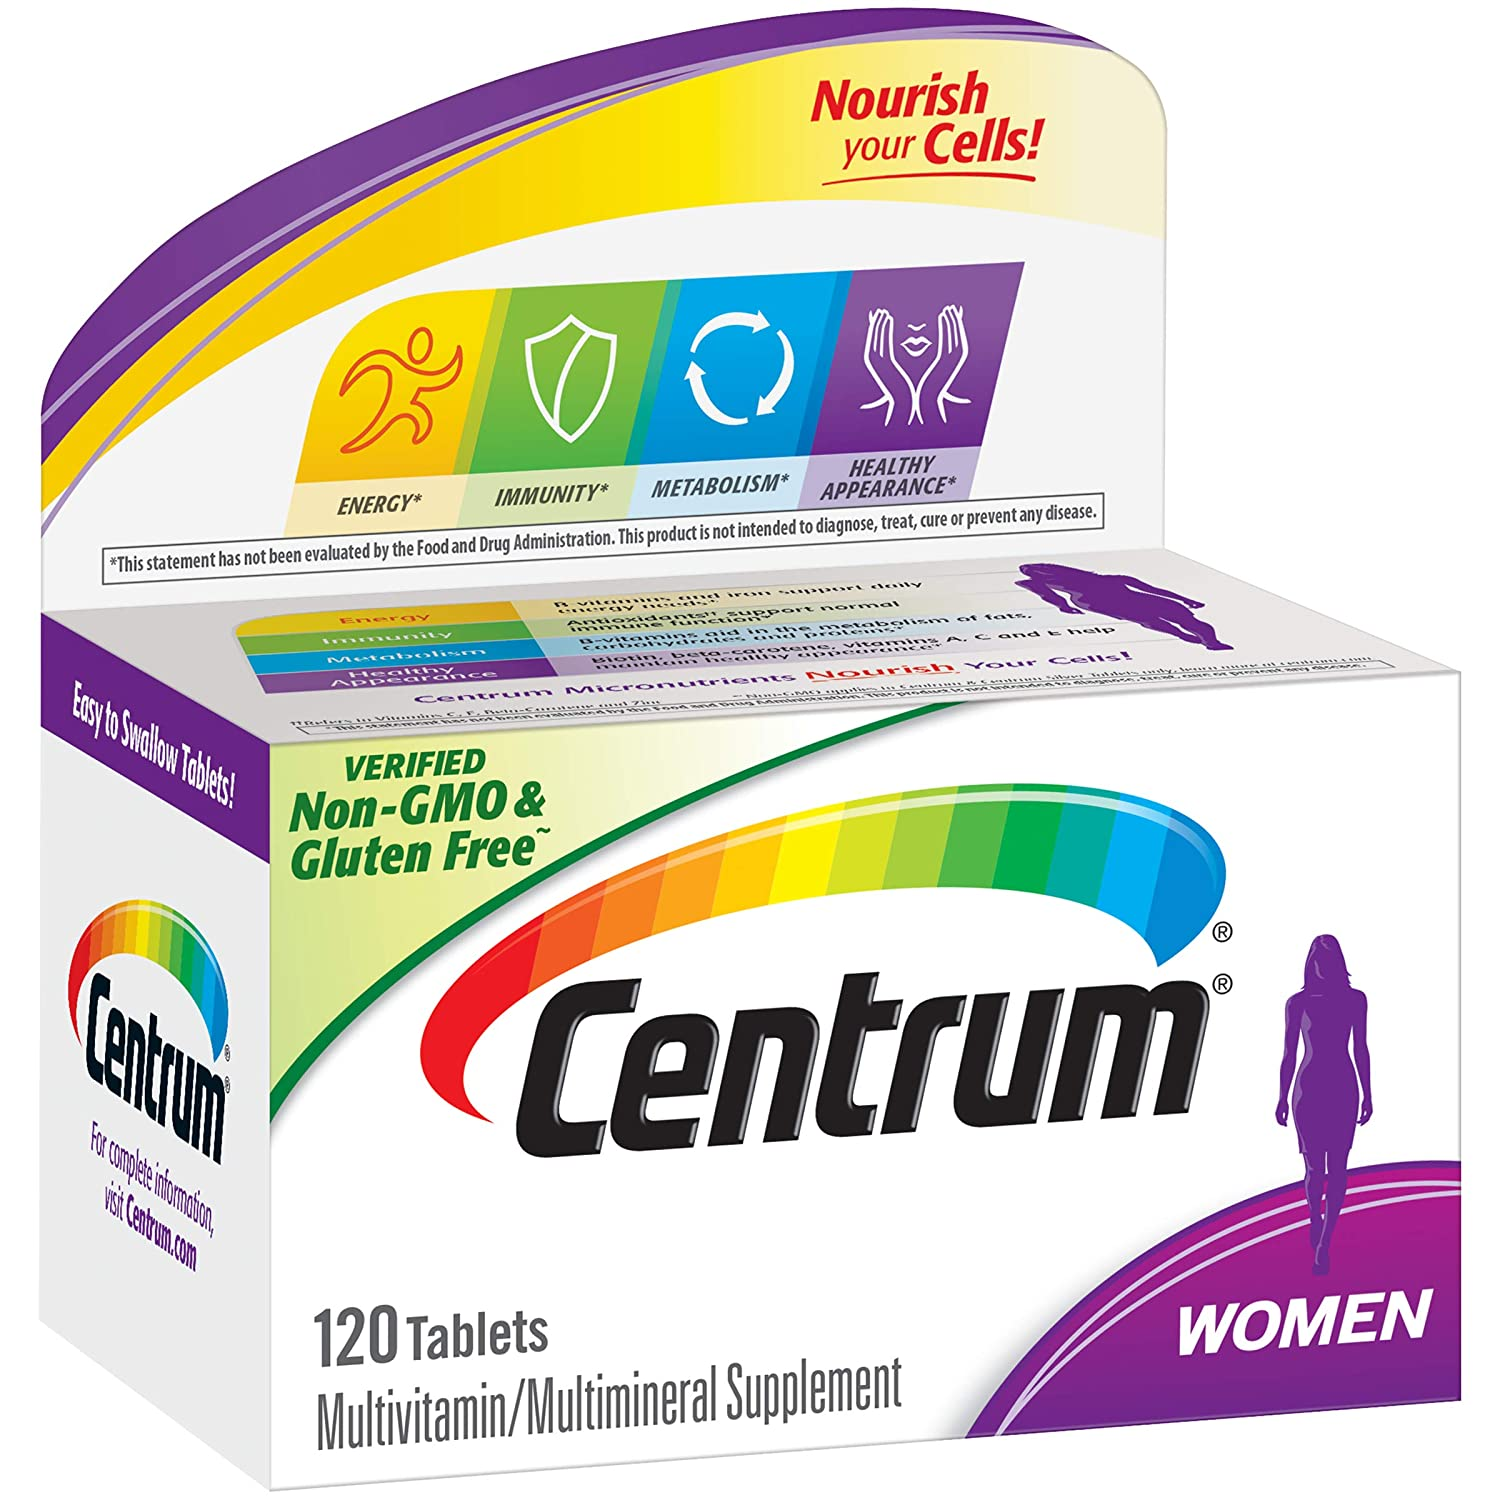 Amazoncom Centrum Women 120 Count Multivitamin